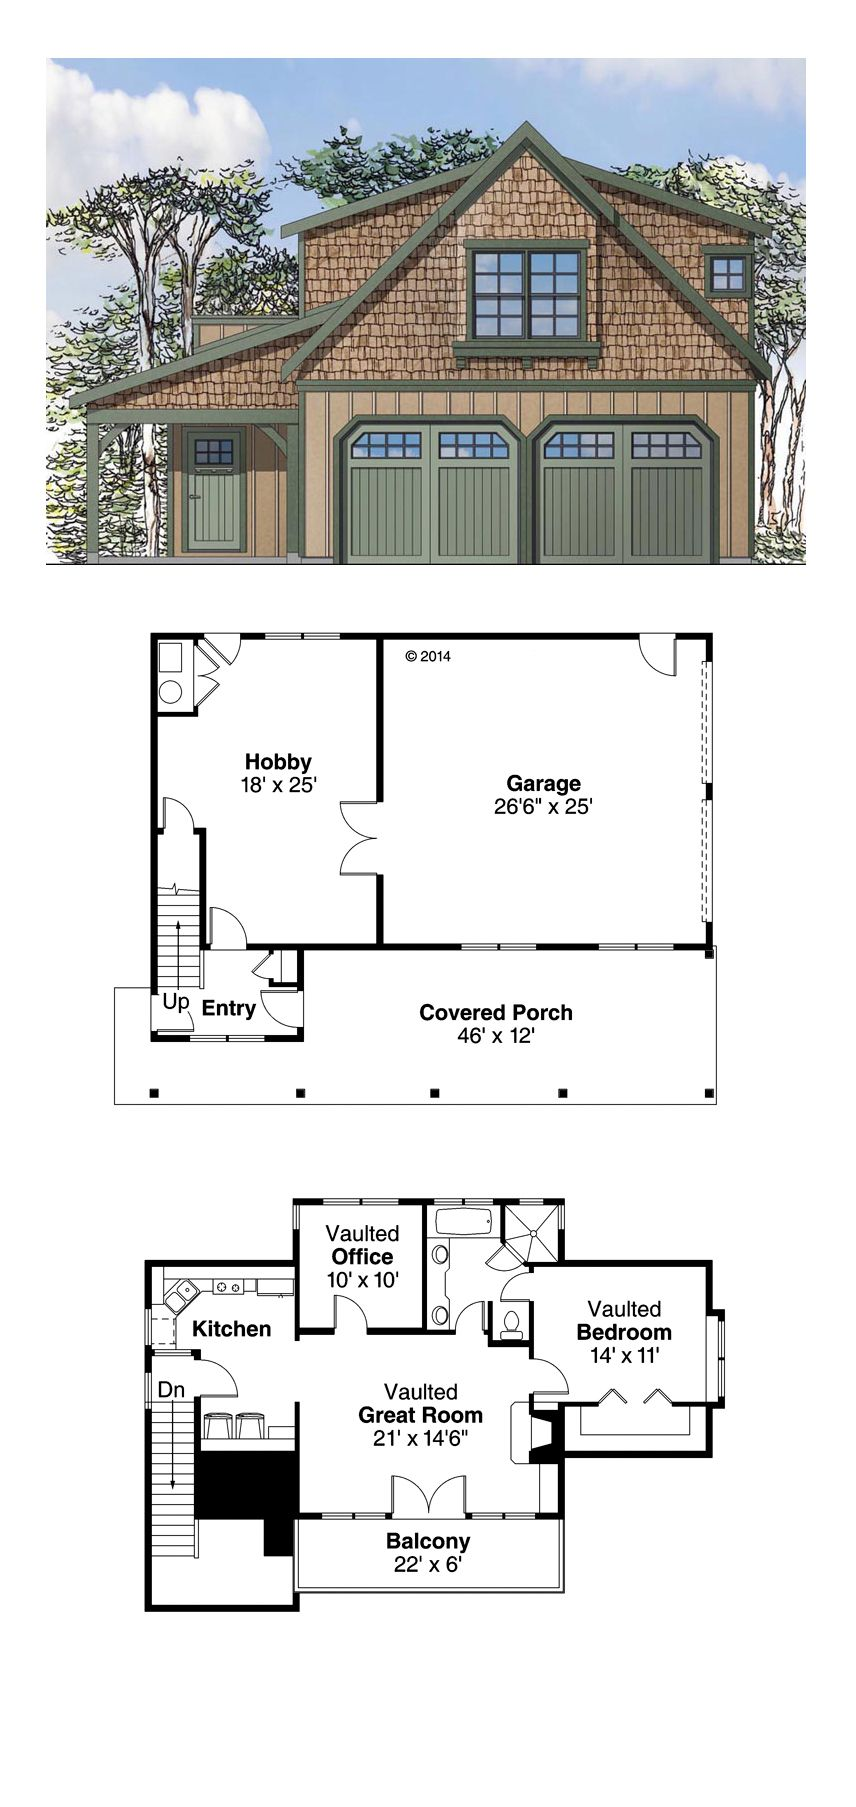 Garage apartment plan 41153 total living area 946 sq for Garage apartment plans canada